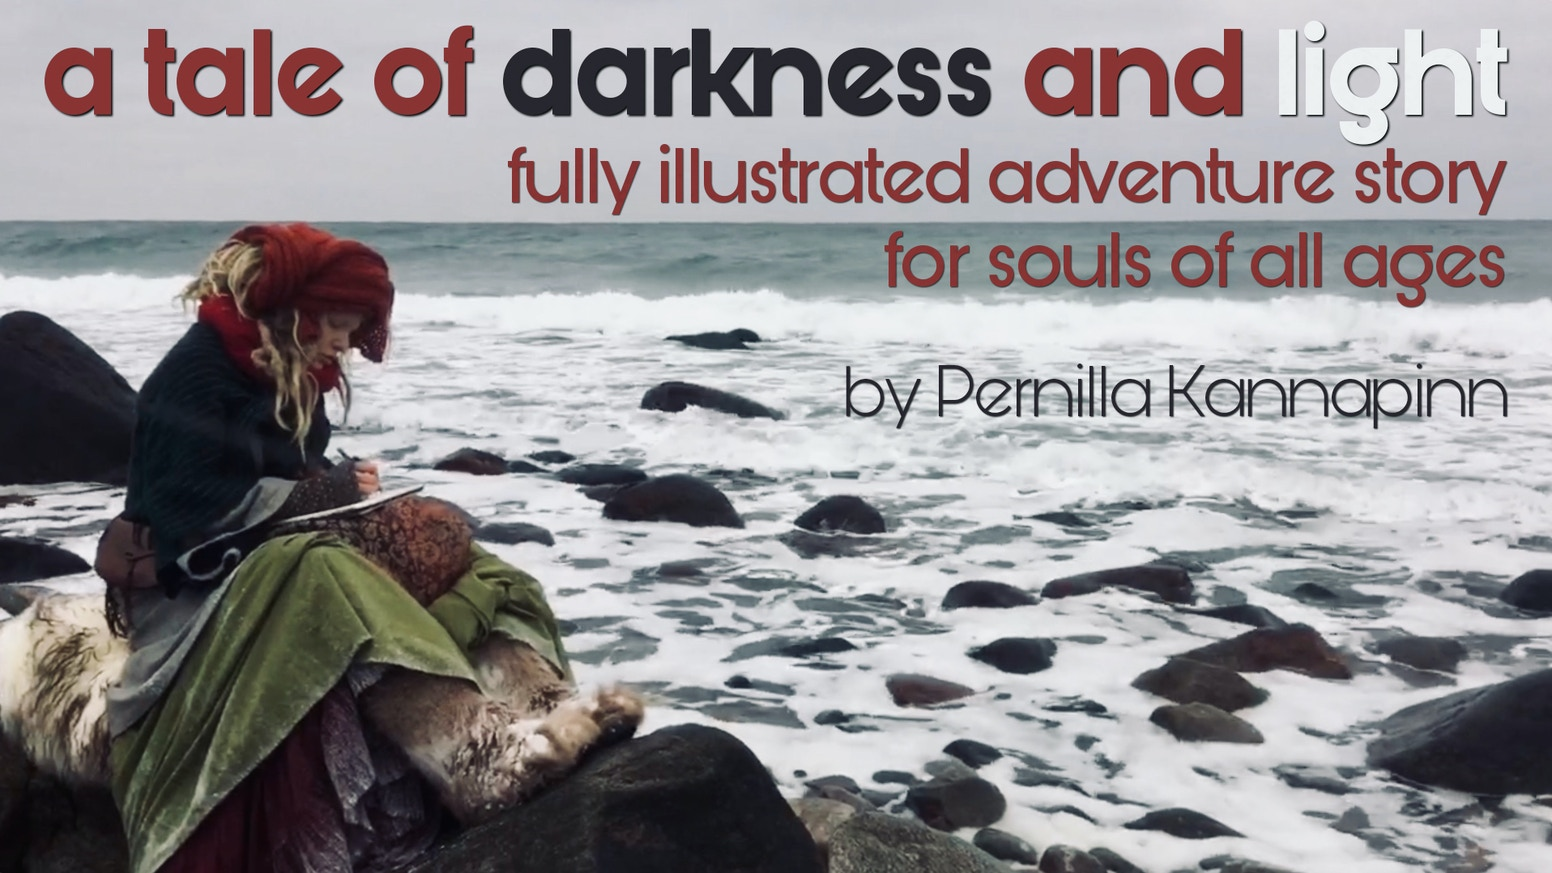 Artist Pernilla Kannapinn turns her intense acrylic paintings and her story of a fantastic journey into a book for souls of all ages.